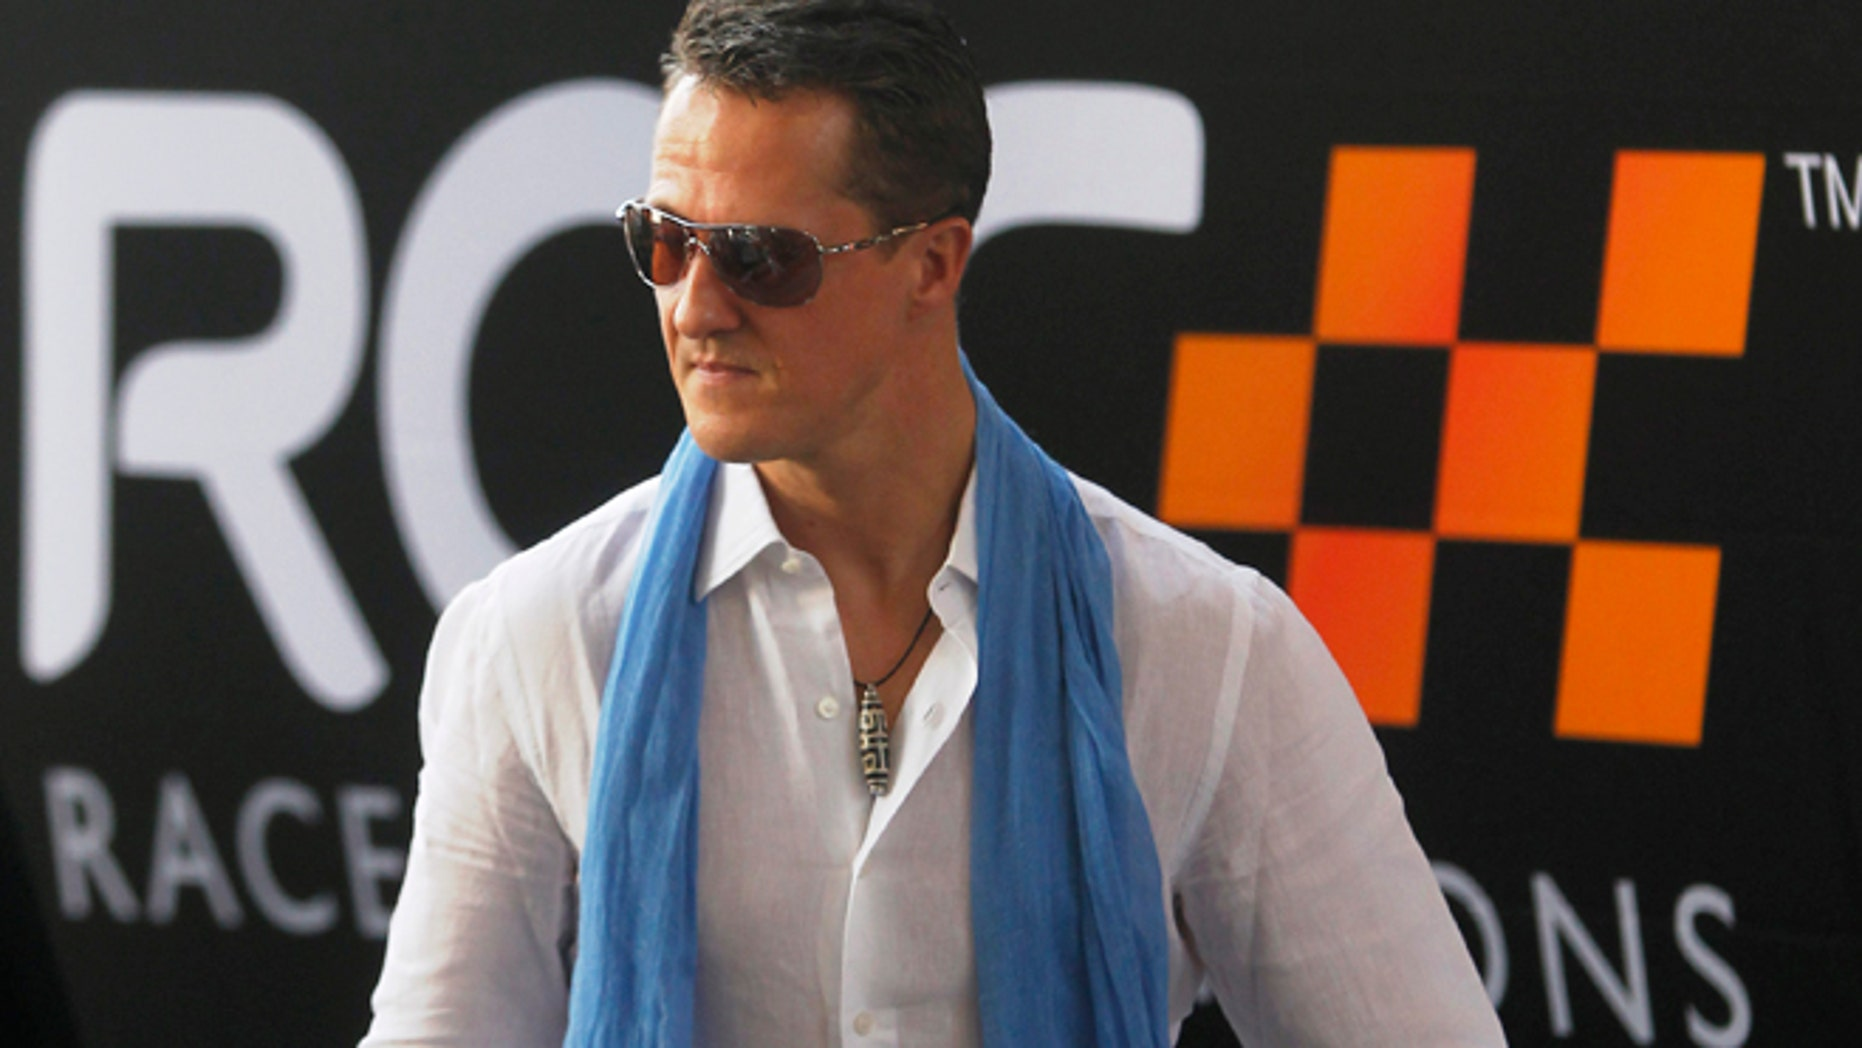 Driver Michael Schumacher from Team Germany arrives at the Rajamangala National Stadium before a practice for the Race of Champions (ROC) in Bangkok December 16, 2012. The Race of Champions runs from December 14 to 16. REUTERS/Chaiwat Subprasom (THAILAND - Tags: SPORT MOTORSPORT) - RTR3BML4